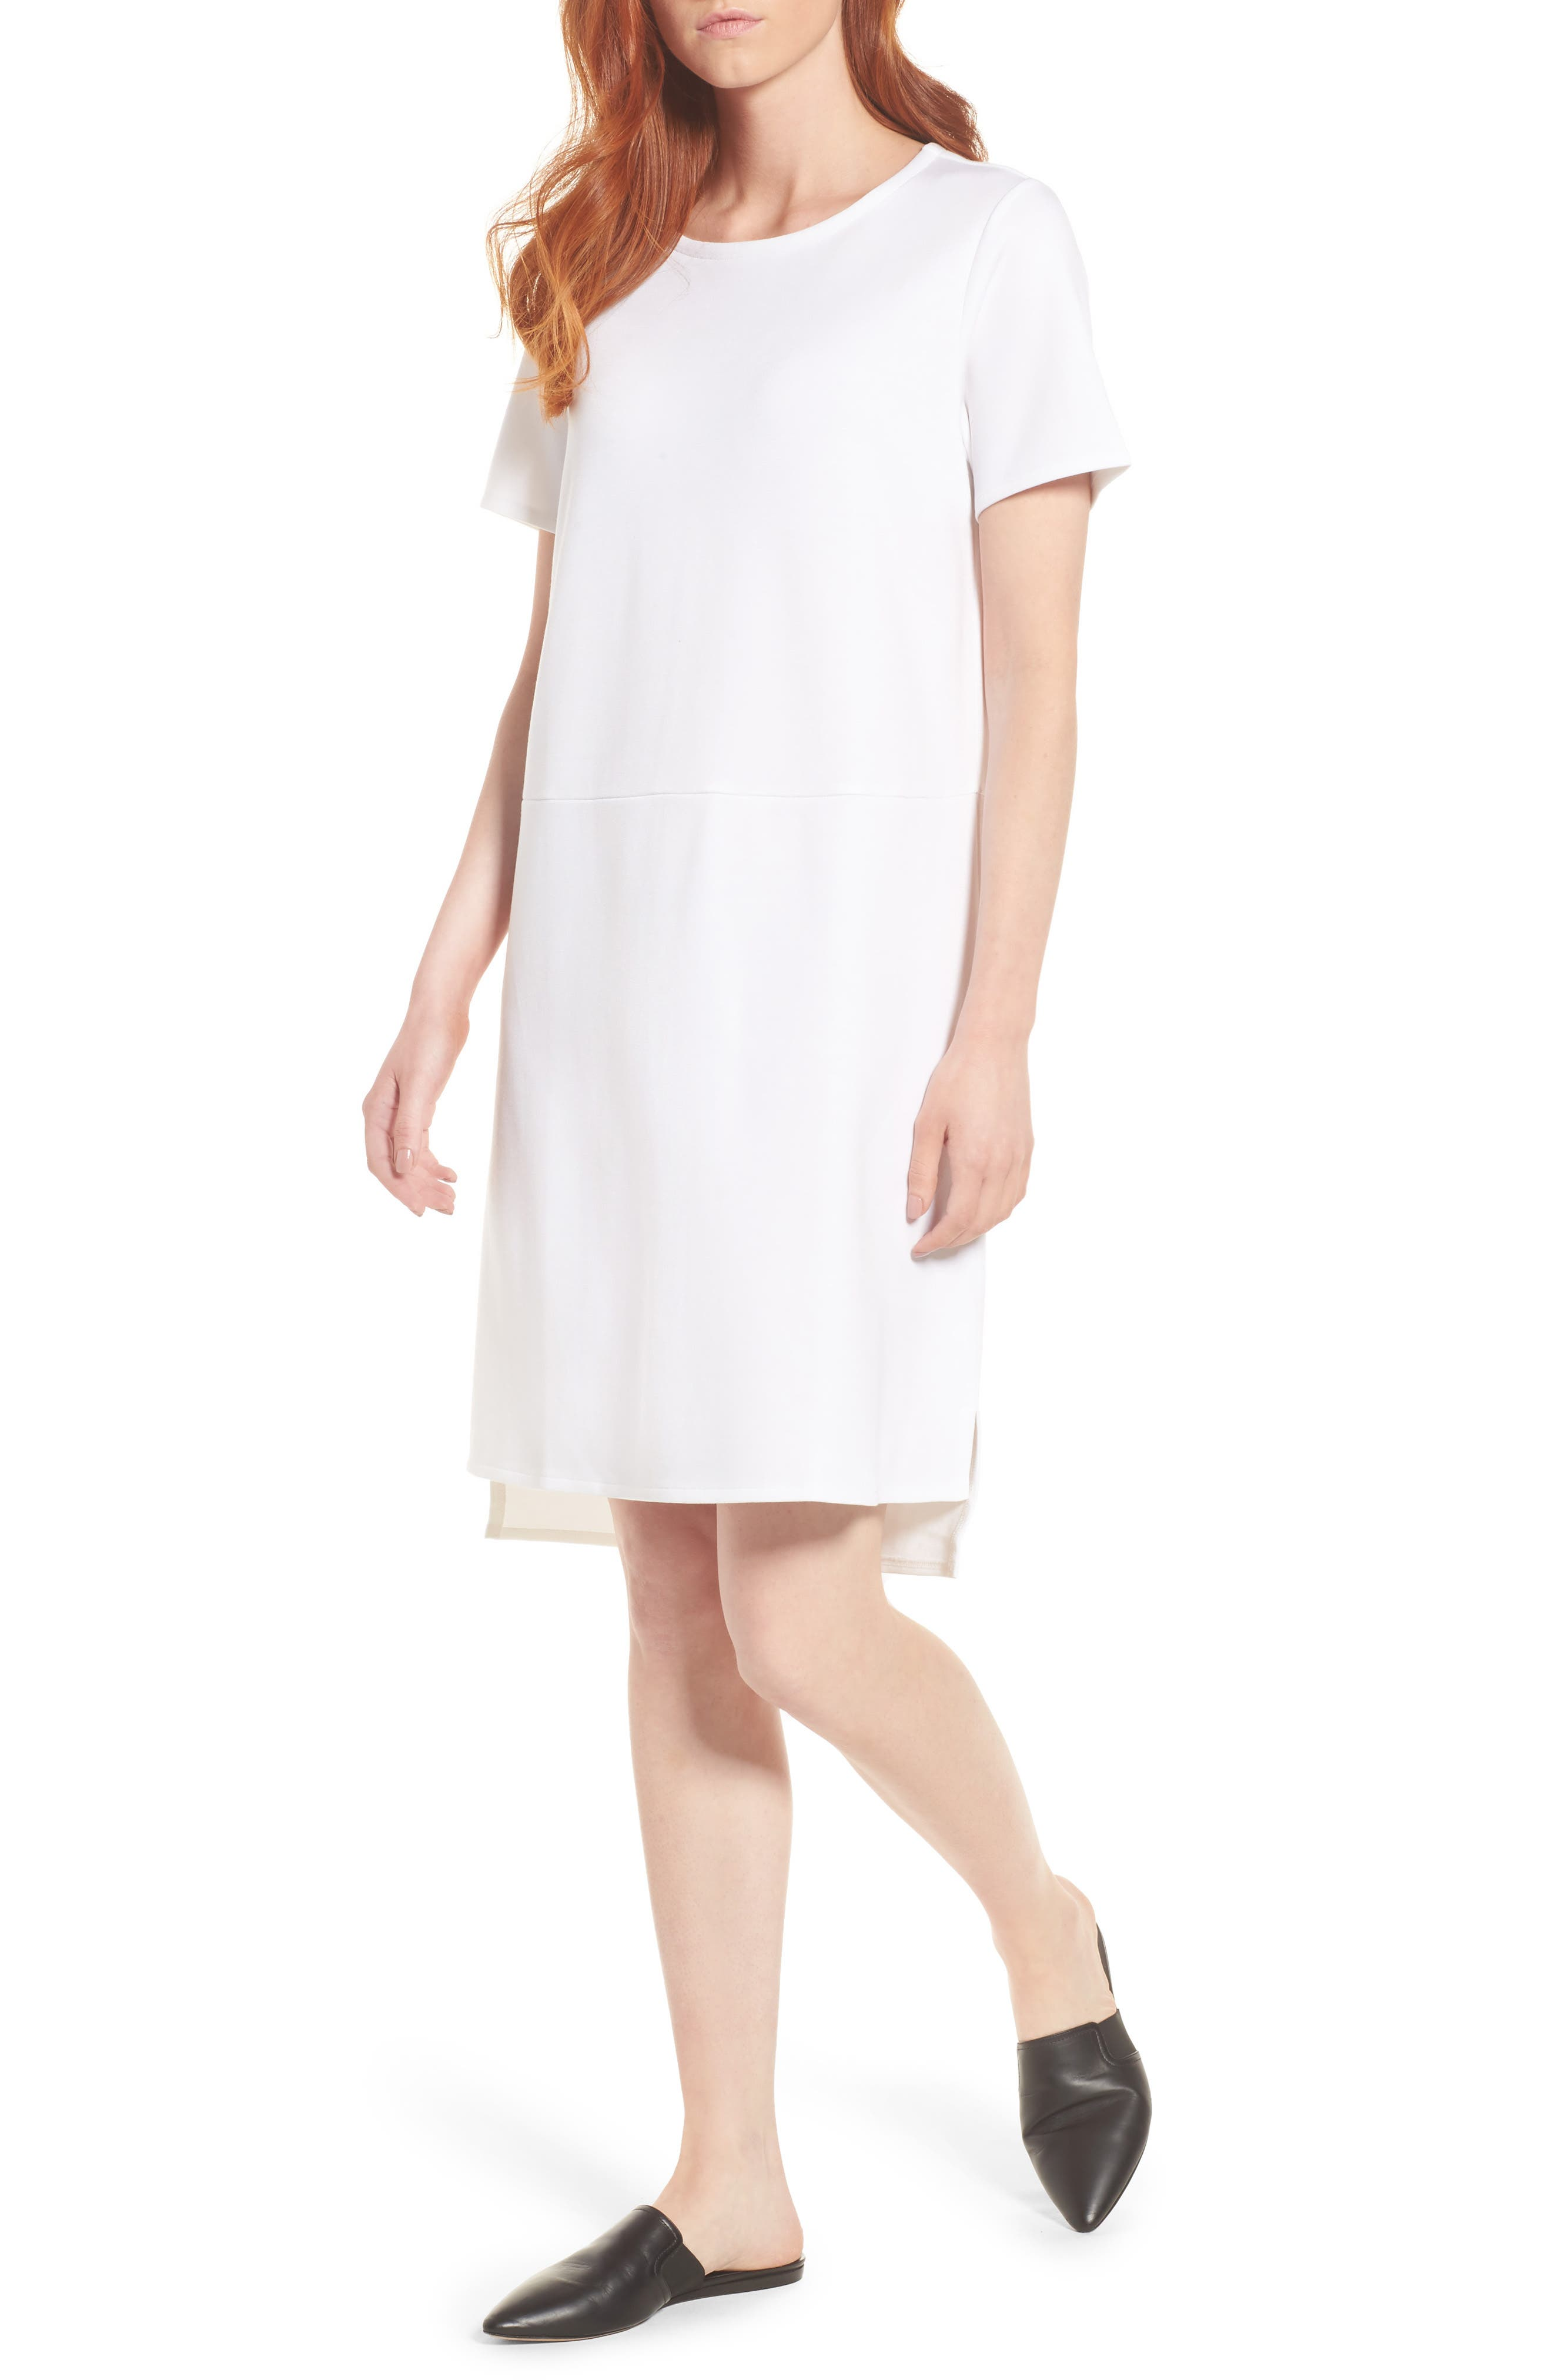 Tencel<sup>®</sup> Lyocell Blend Knit Shift Dress,                         Main,                         color, White